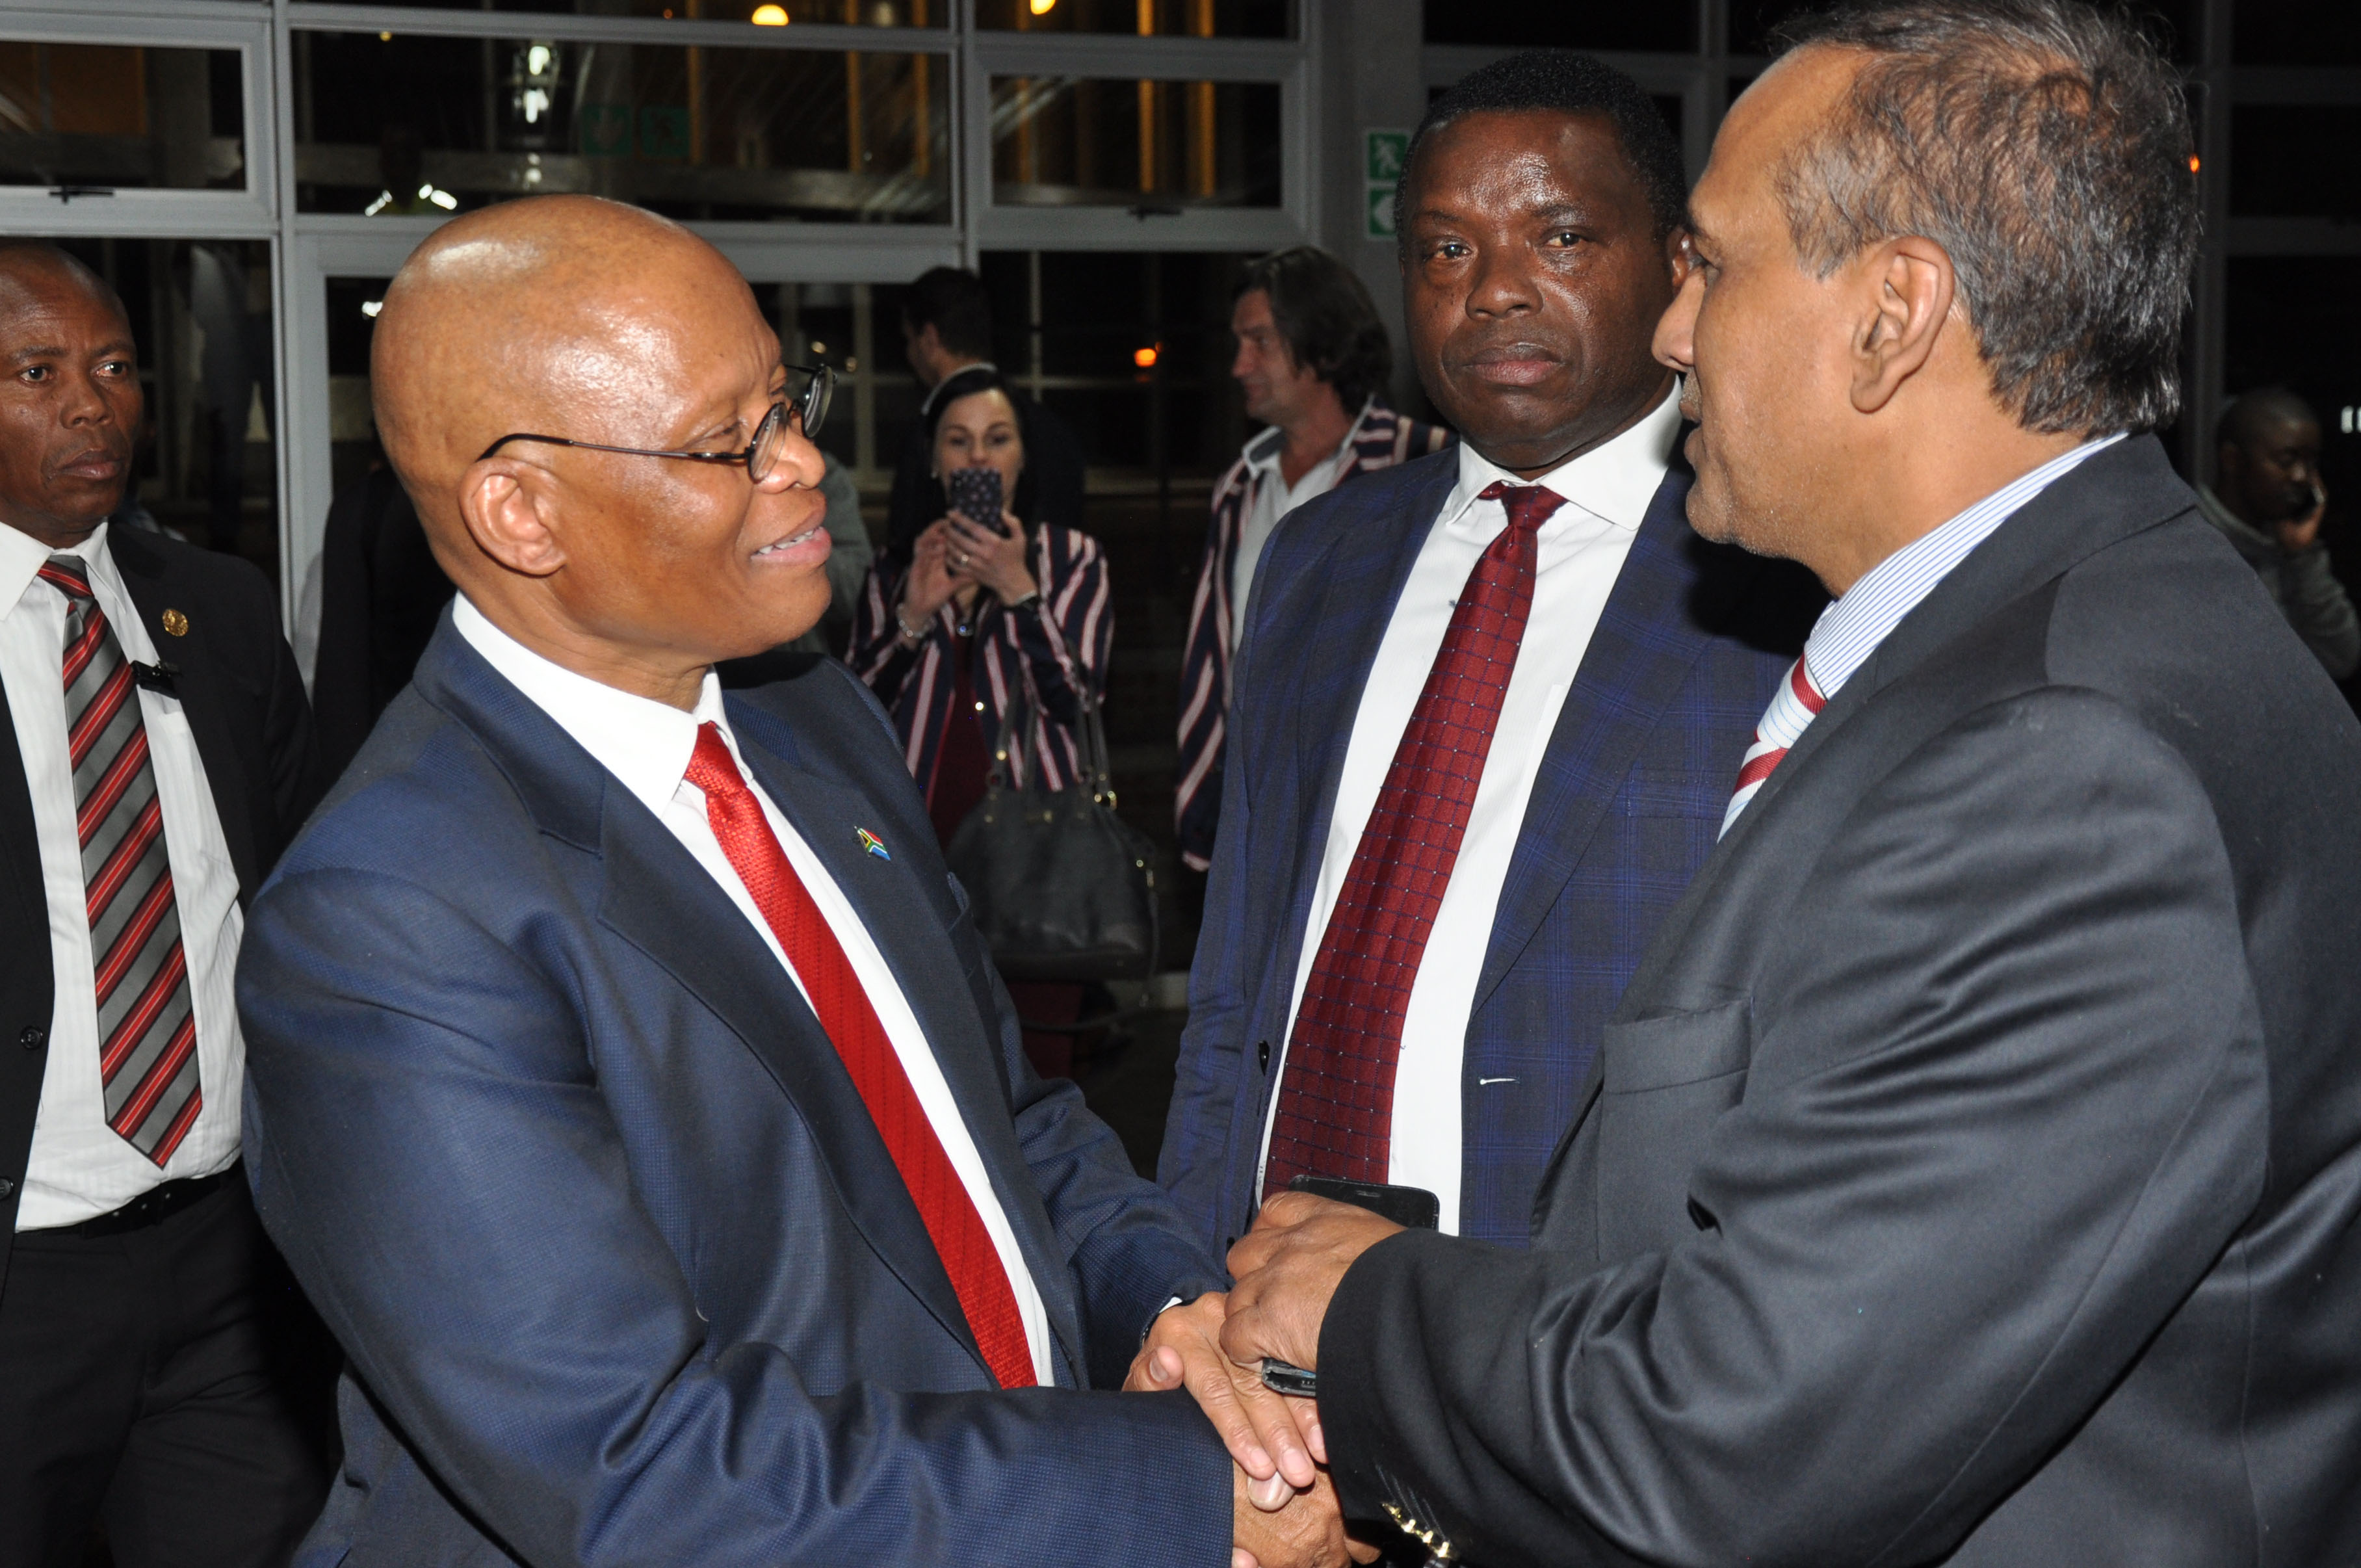 From the left: Chief Justice Mogoeng Mogoeng, Prof John Mubangizi, Prof Prakash Naidoo